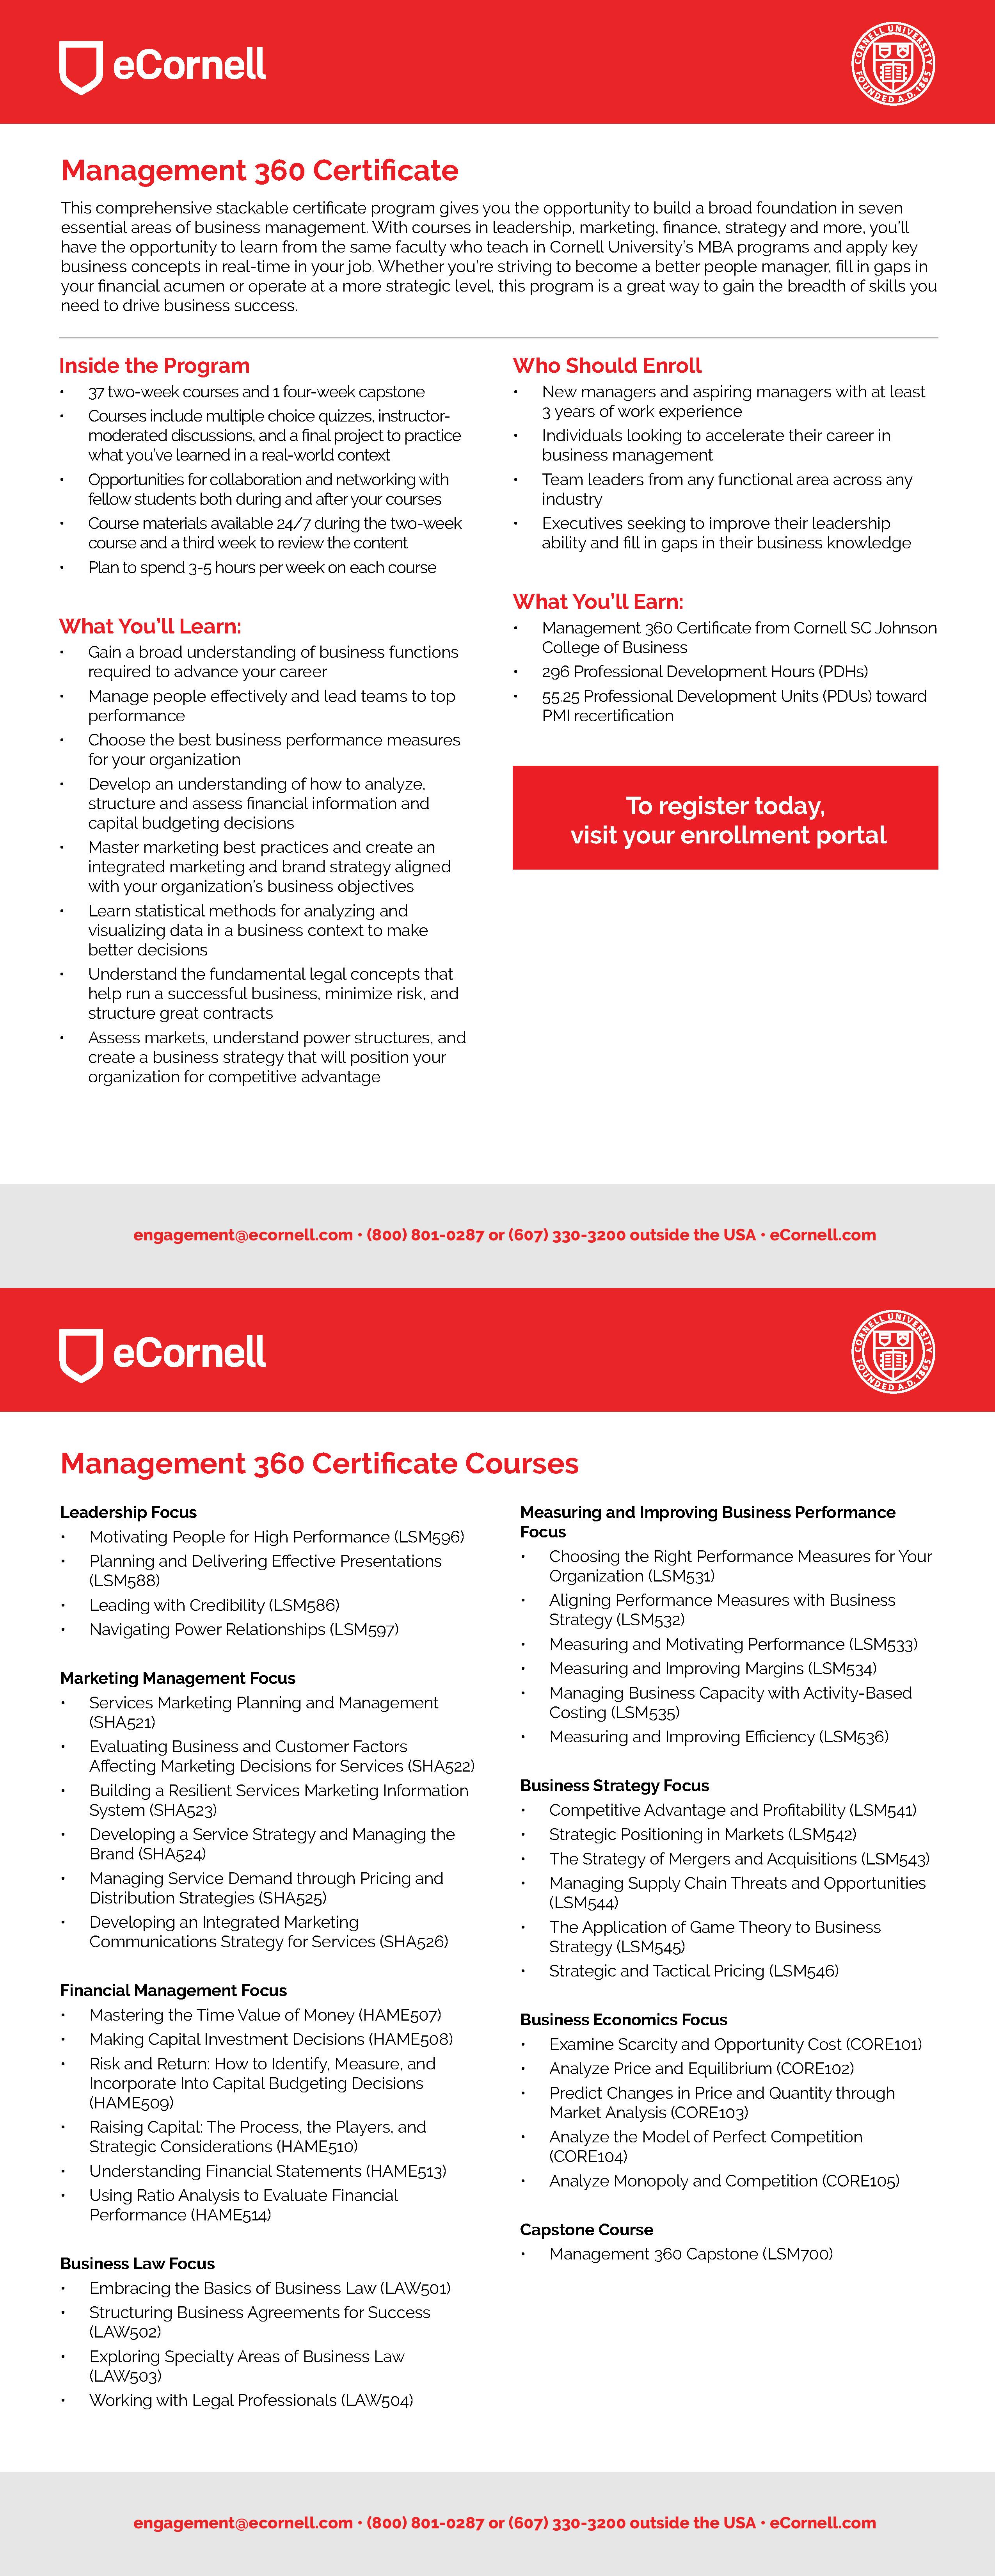 Management 360 Flyer for Corporations